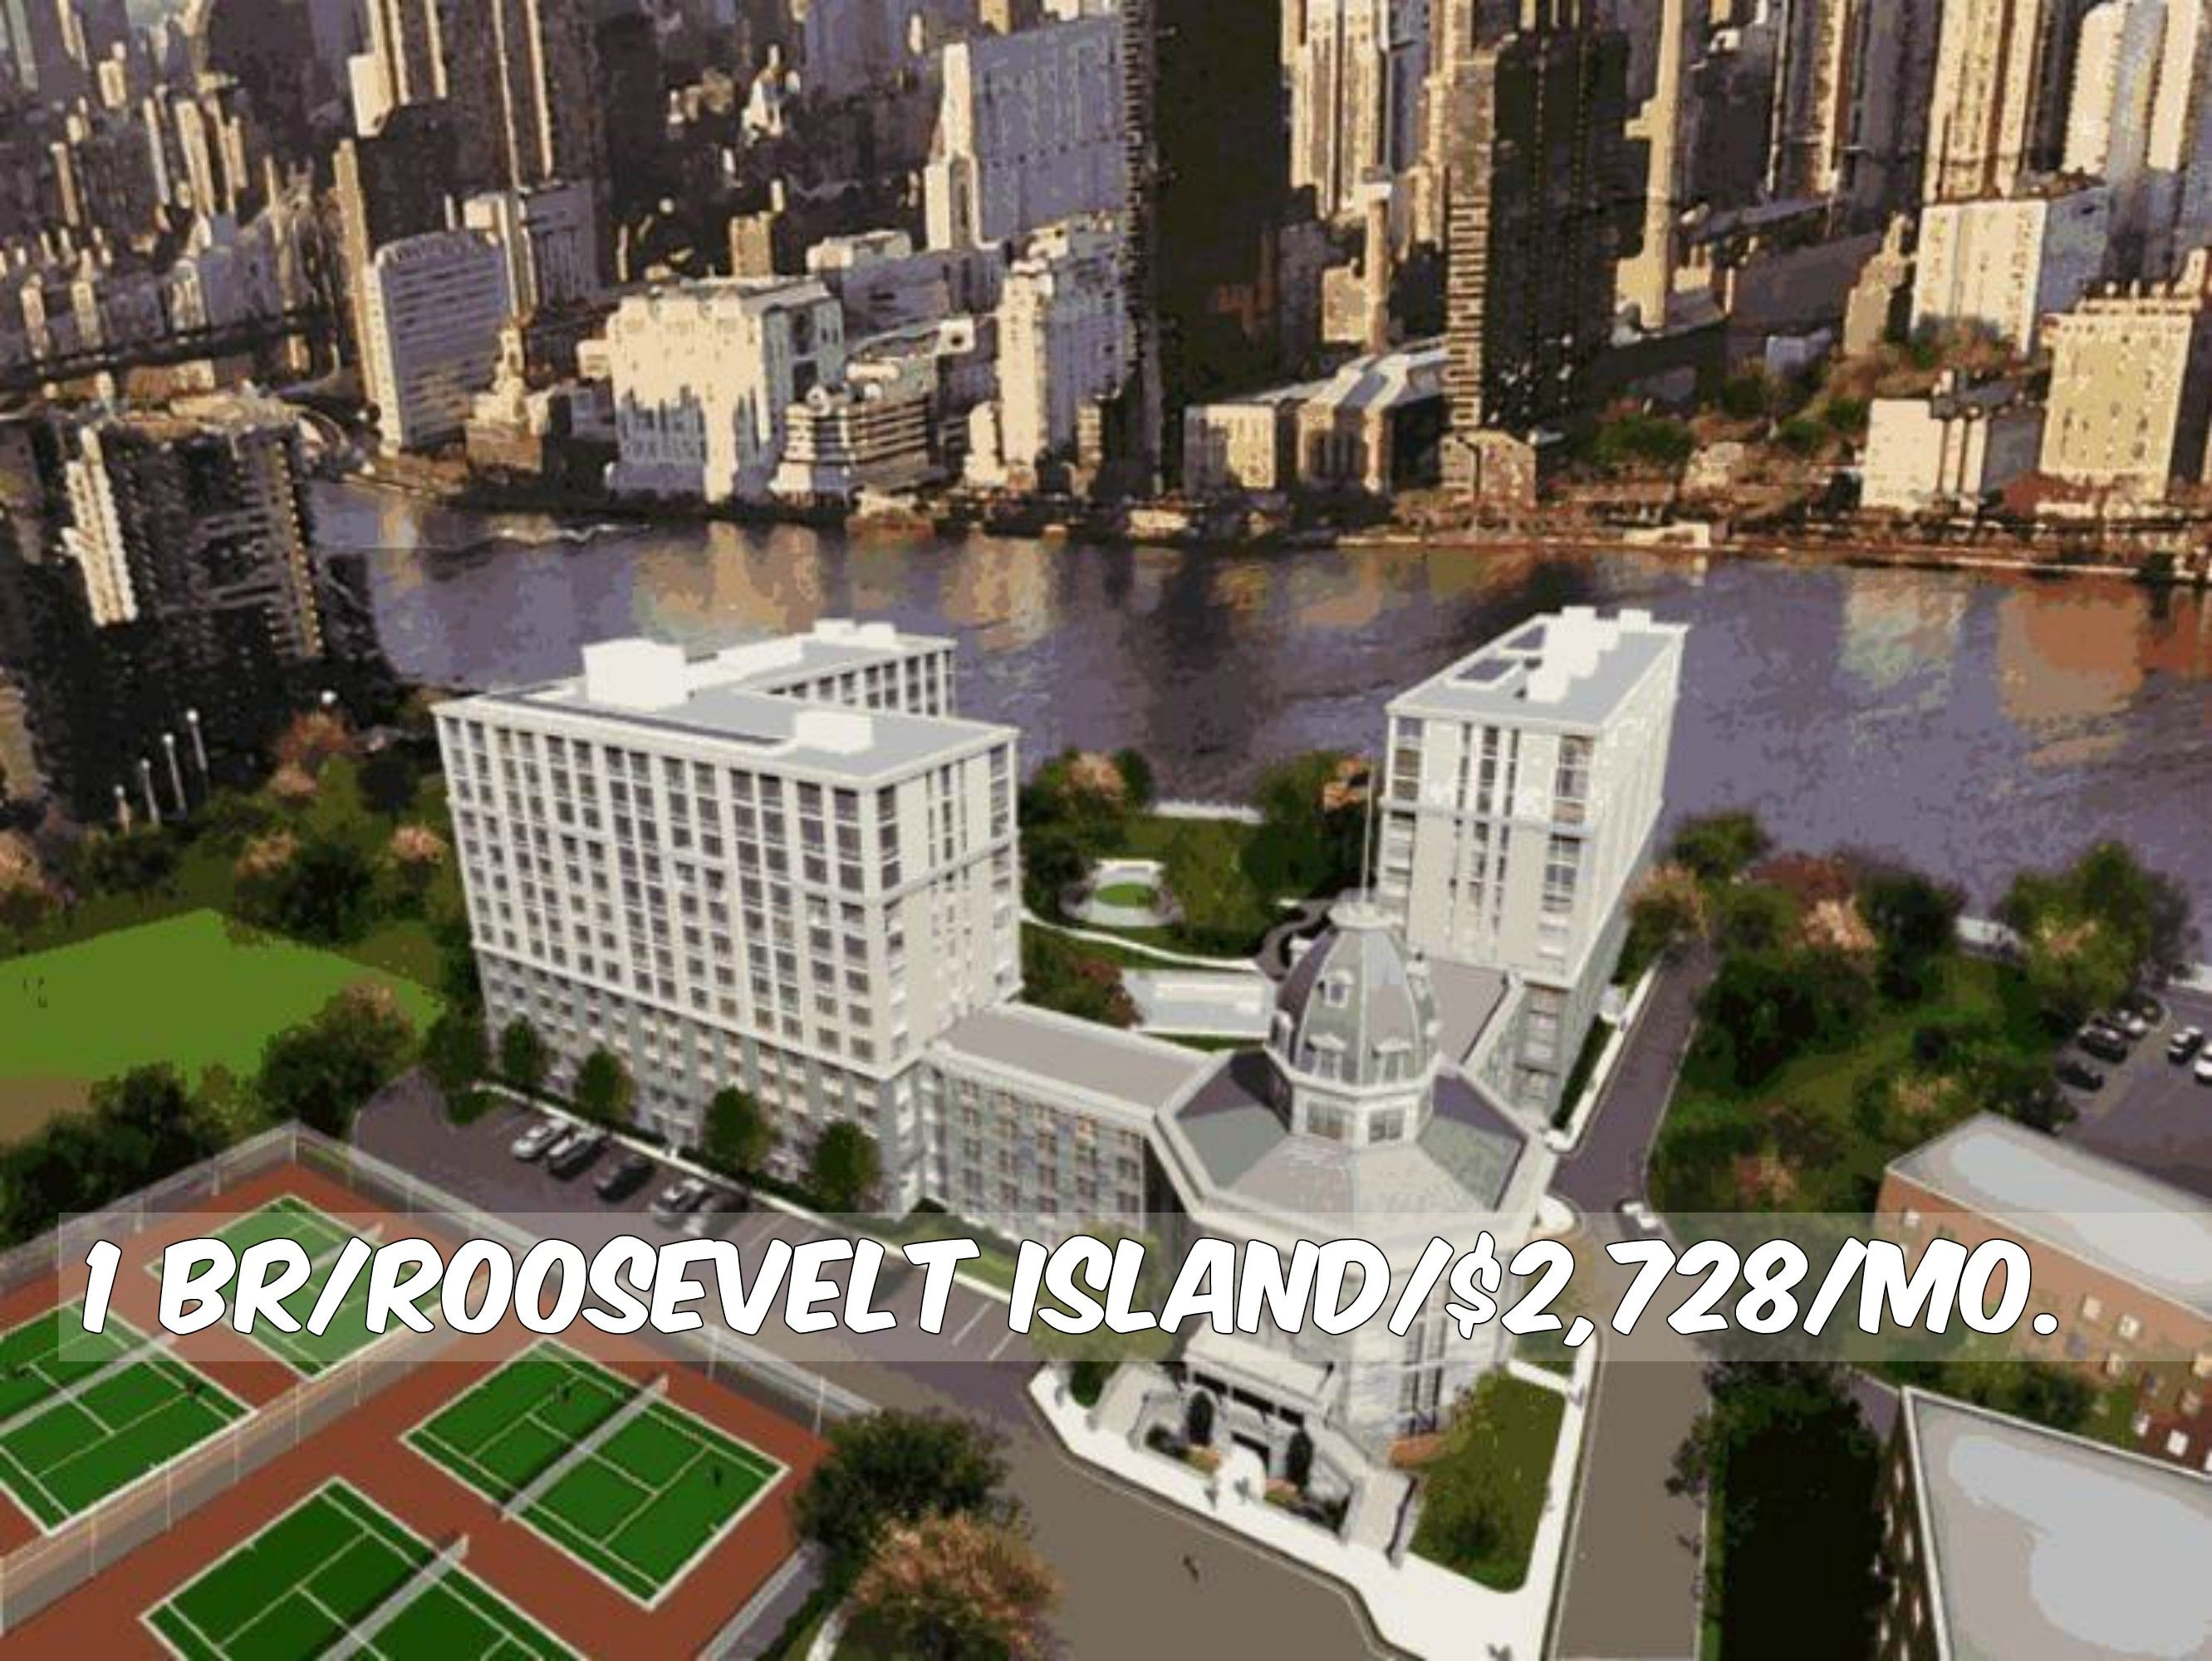 1 BR apt for rent in Roosevelt Island at $2,728/mo.Doorman,Elevator,Health Club,Pool,Laundry,Storage,Common Outdoor Space. Contact us for details.Web ID:134402. #NYCApartments #MovingToNYC #NYCrentals #ApartmentHunting #Moving #NYC #NoFeeApt